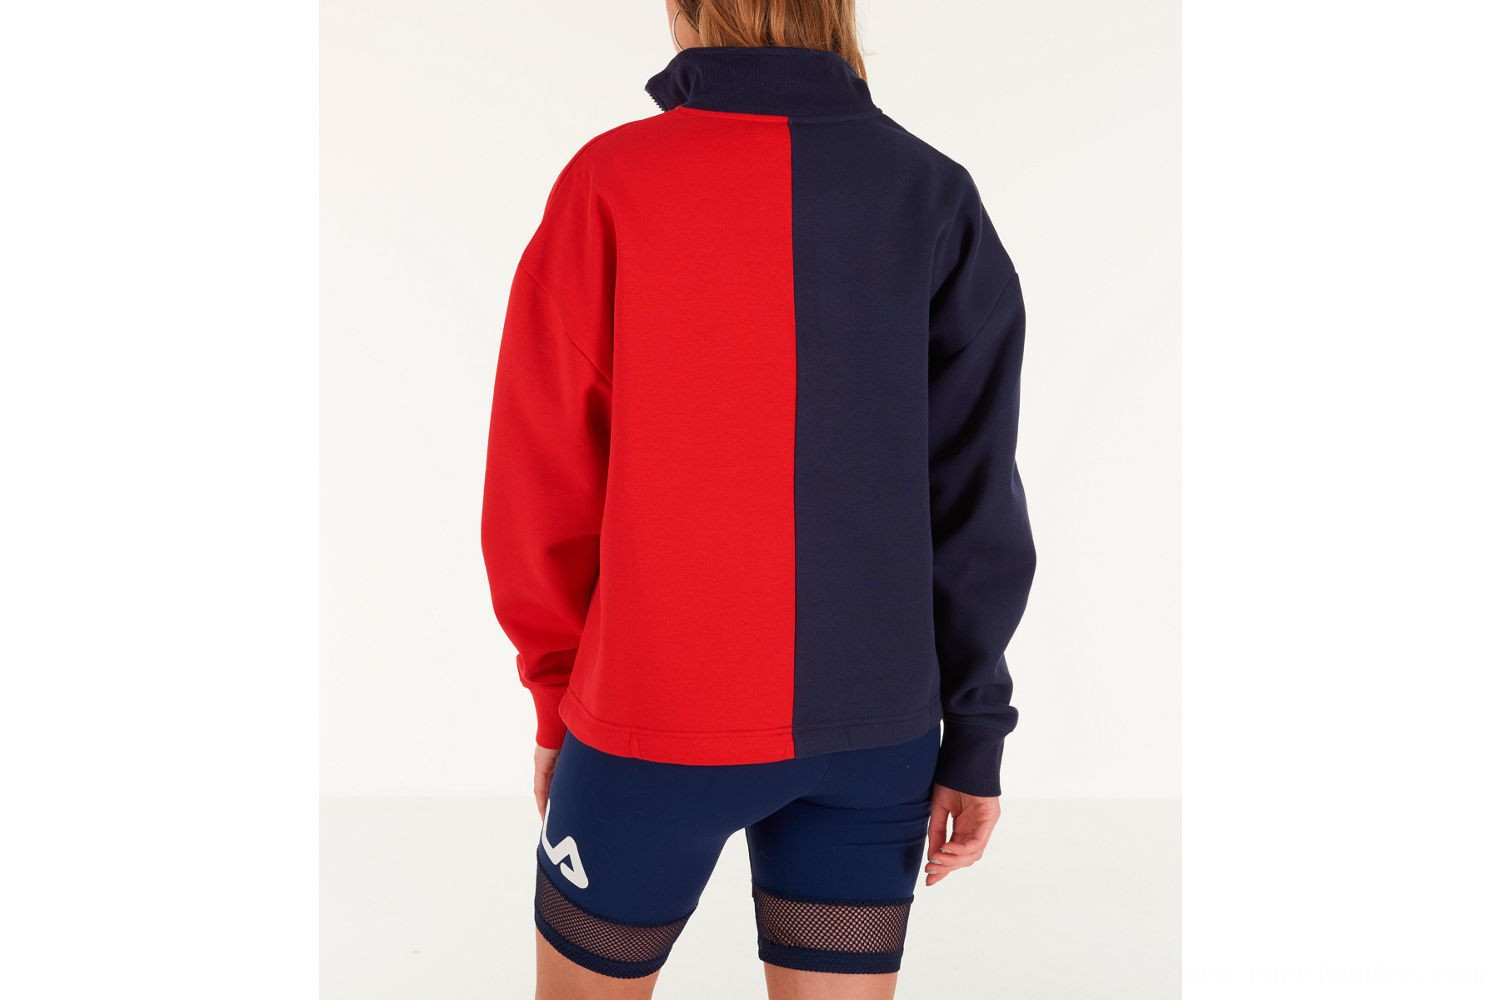 Fila Women's Nayara Quarter-Zip Sweatshirt - Navy/Red